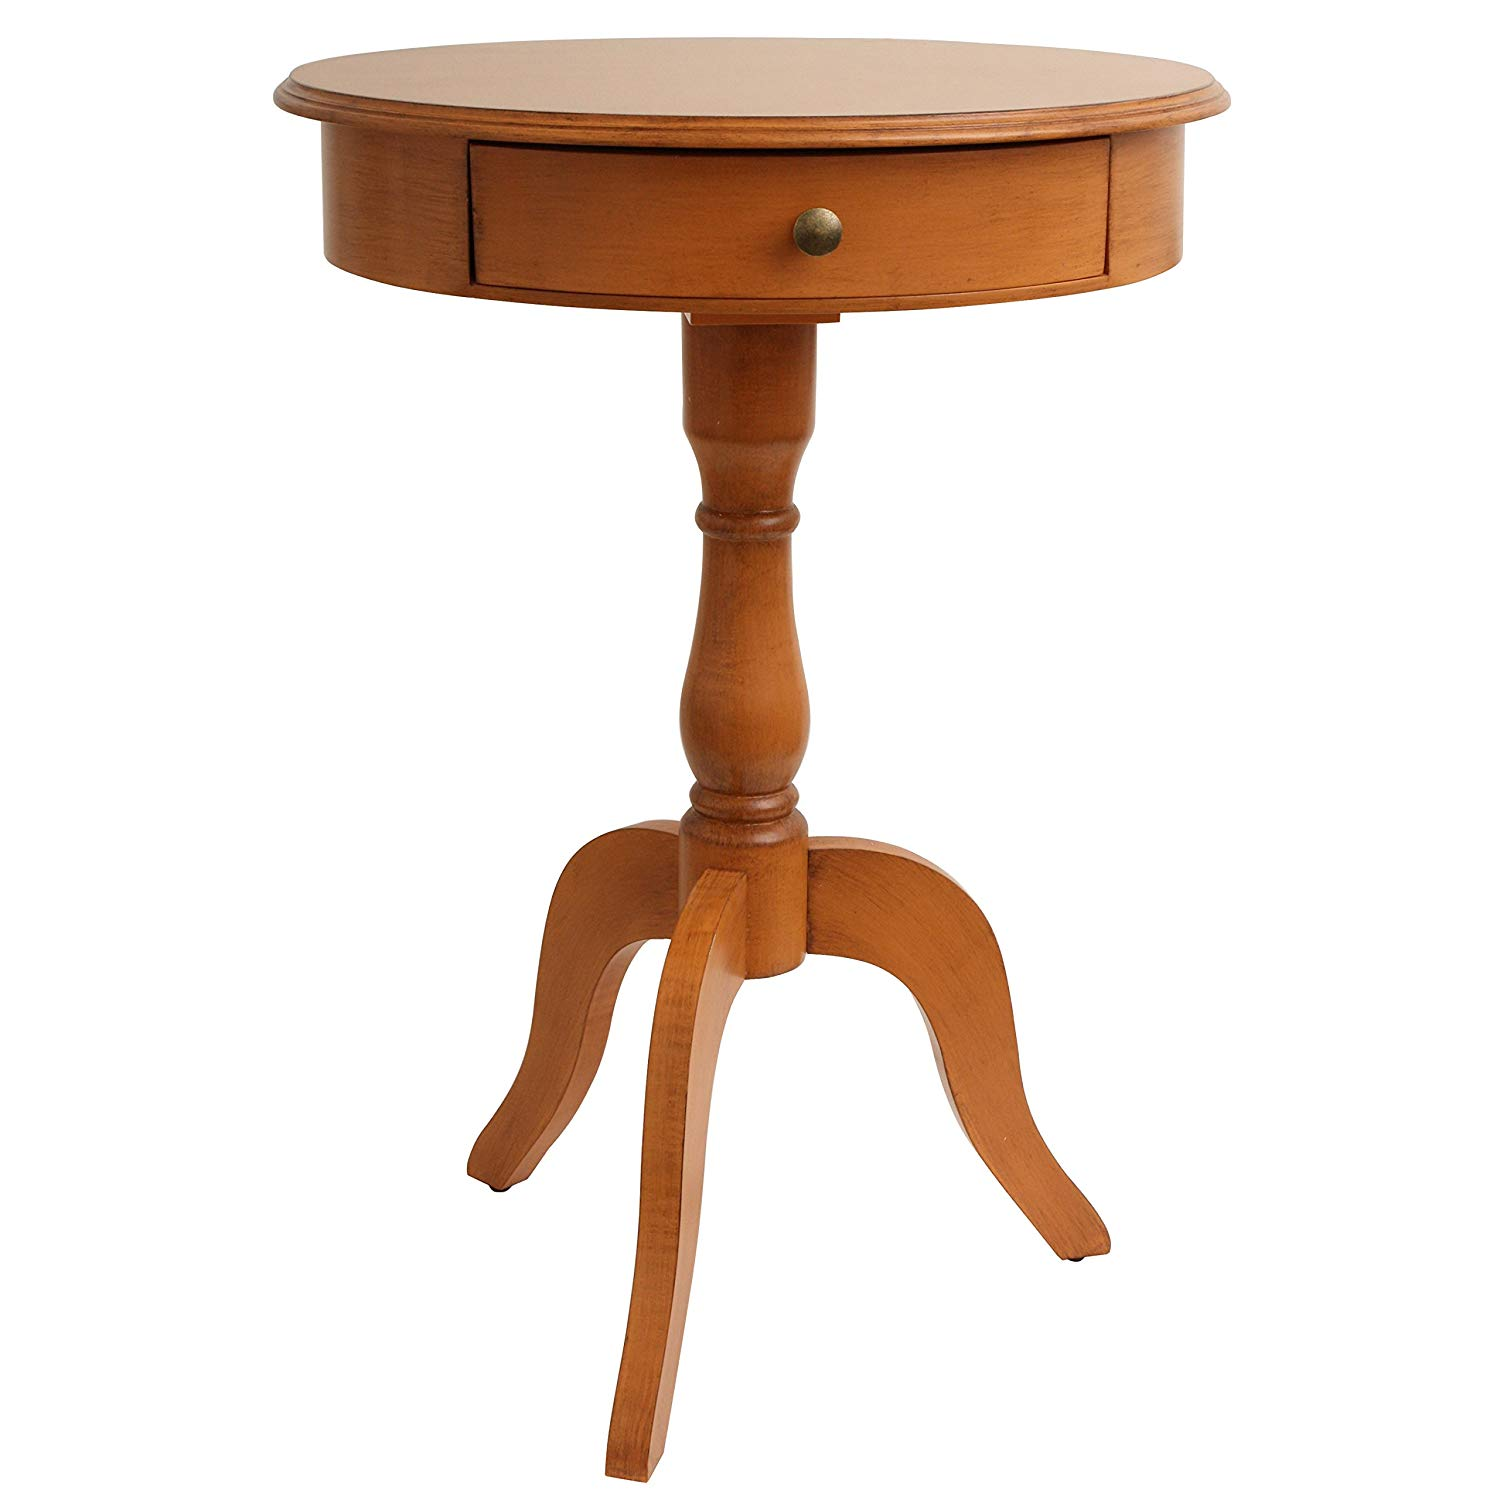 decor therapy pedestal table with drawer antique white accent kitchen dining round glass rustic hardwood reclaimed wood pub small half console oak drop leaf double dimmable lamp